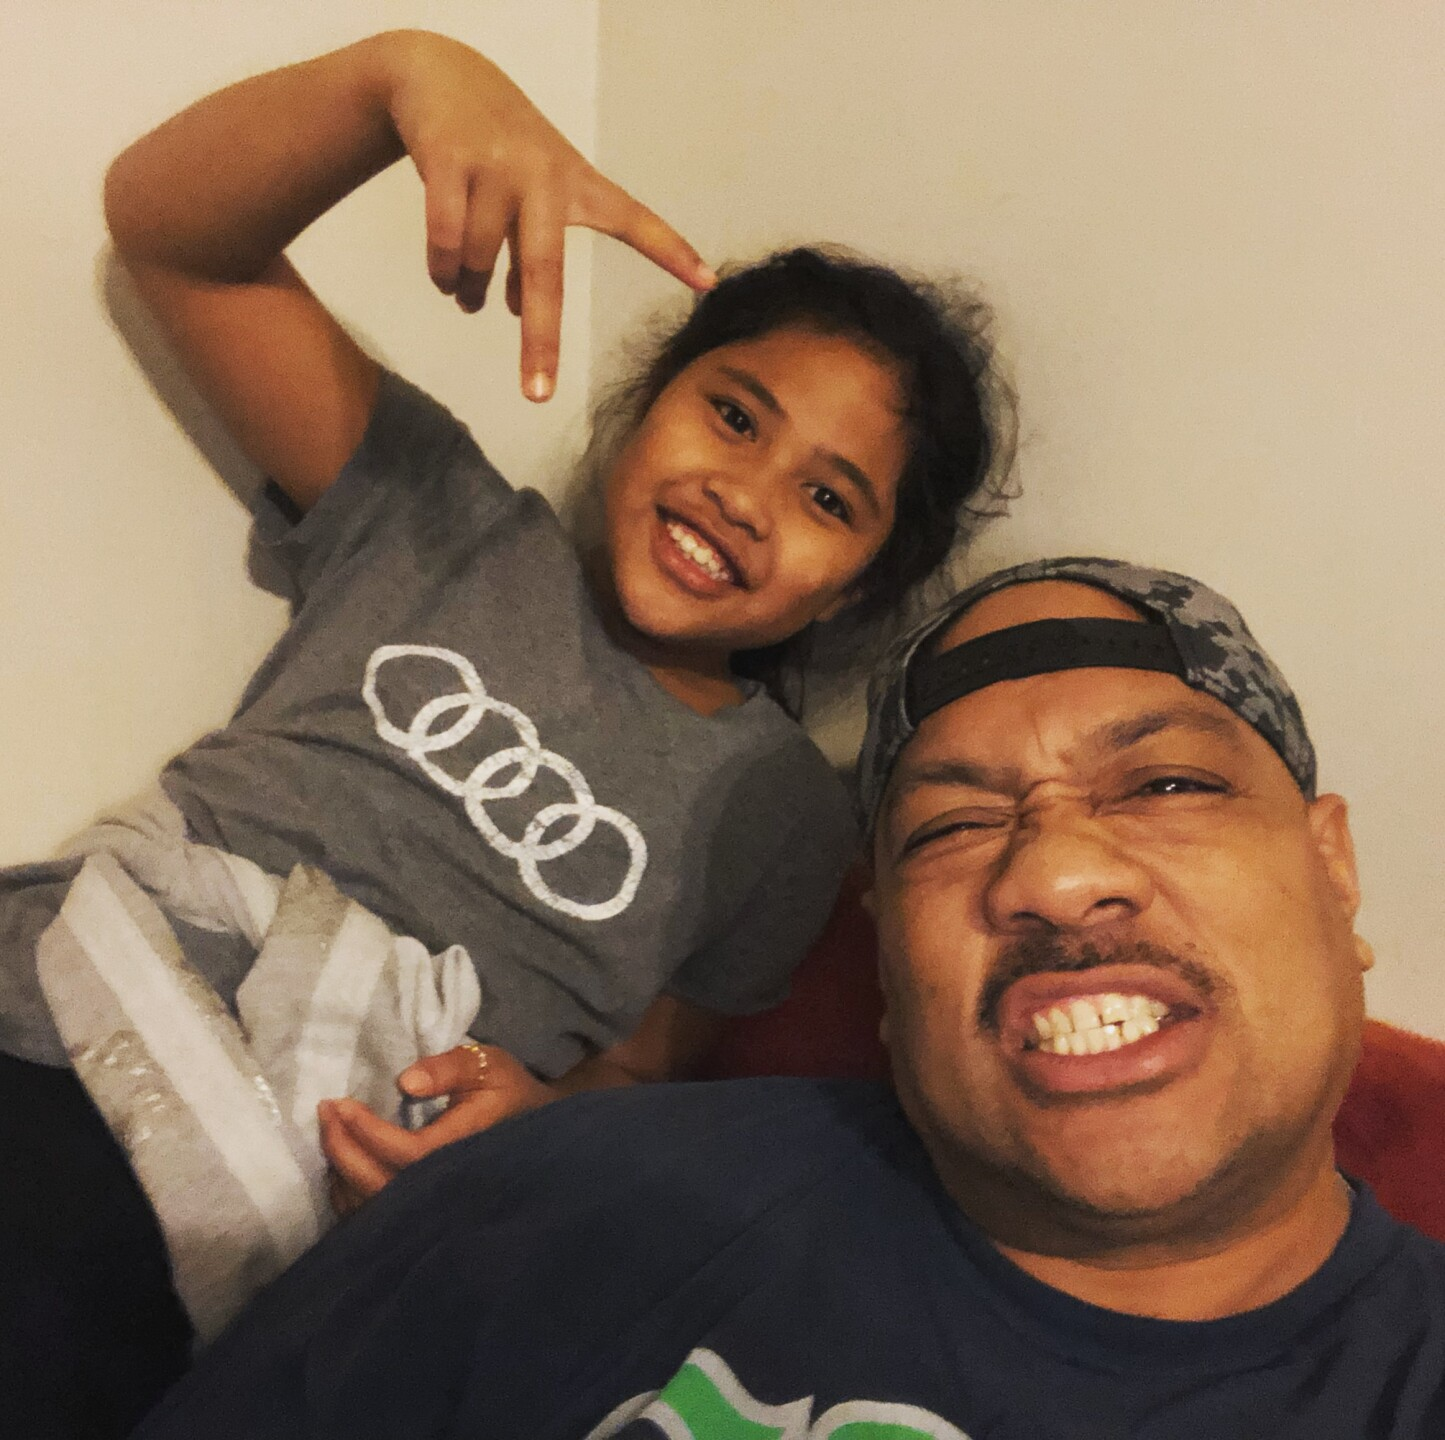 Photos: Big Budah's blog: Loving success on the court, and courting love athome